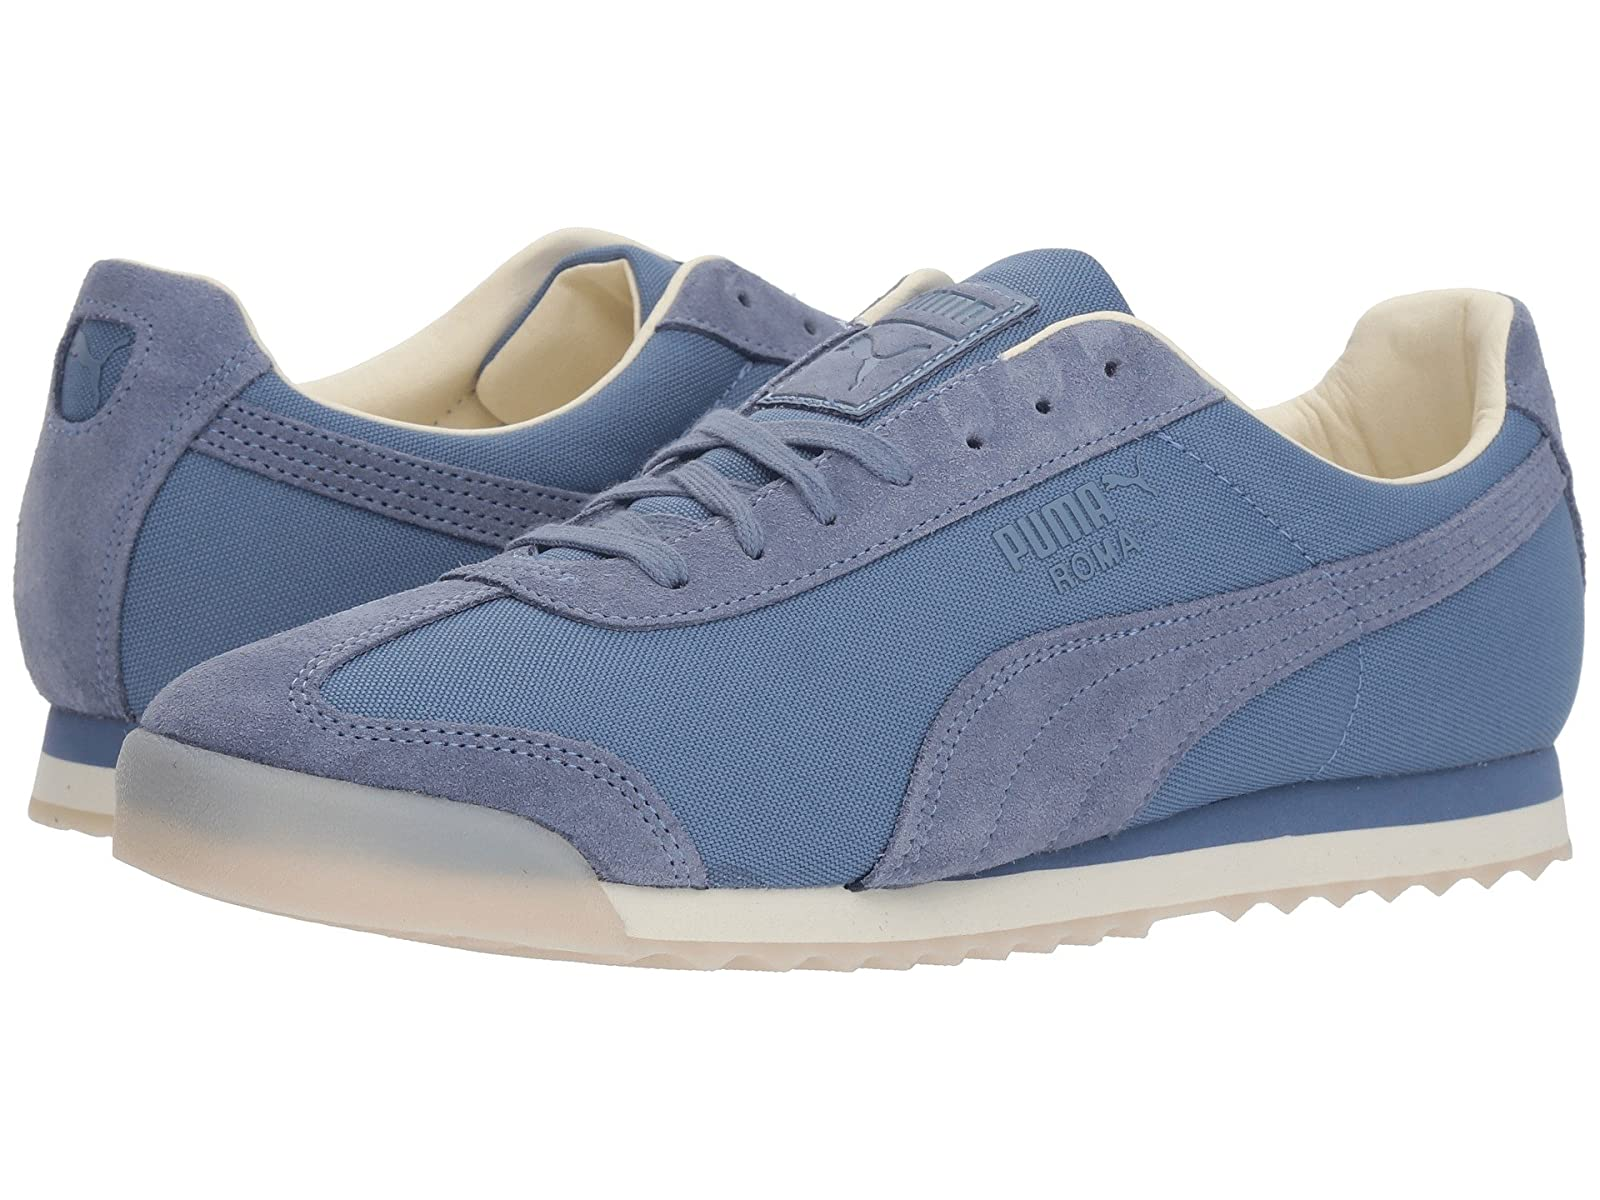 PUMA Roma SummerCheap and distinctive eye-catching shoes